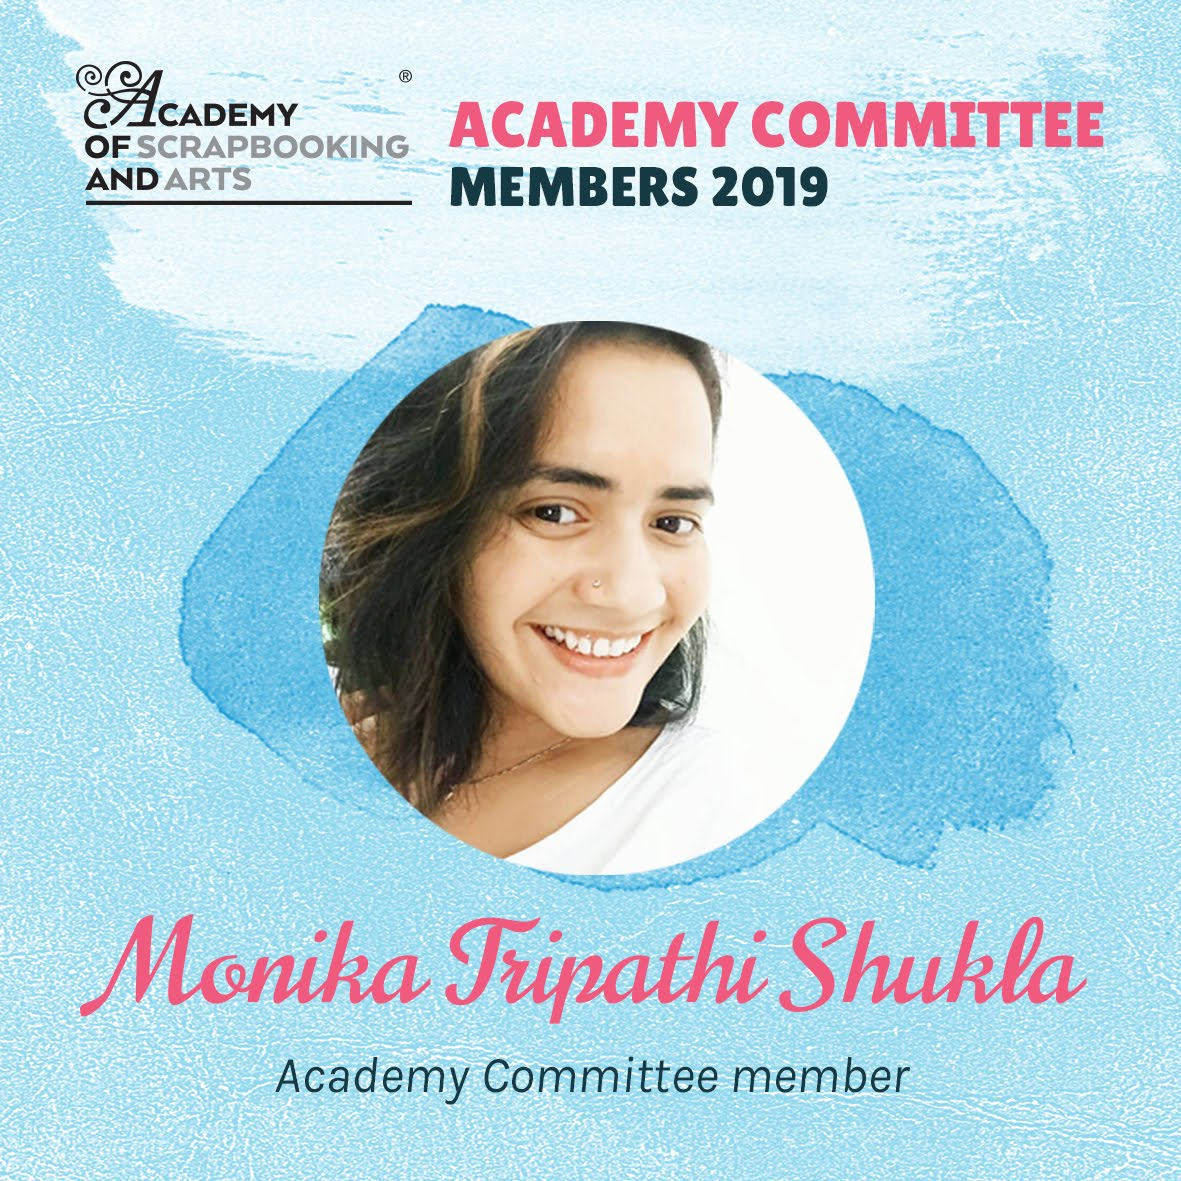 Committee Member for Academy of Scrapbooking and Arts